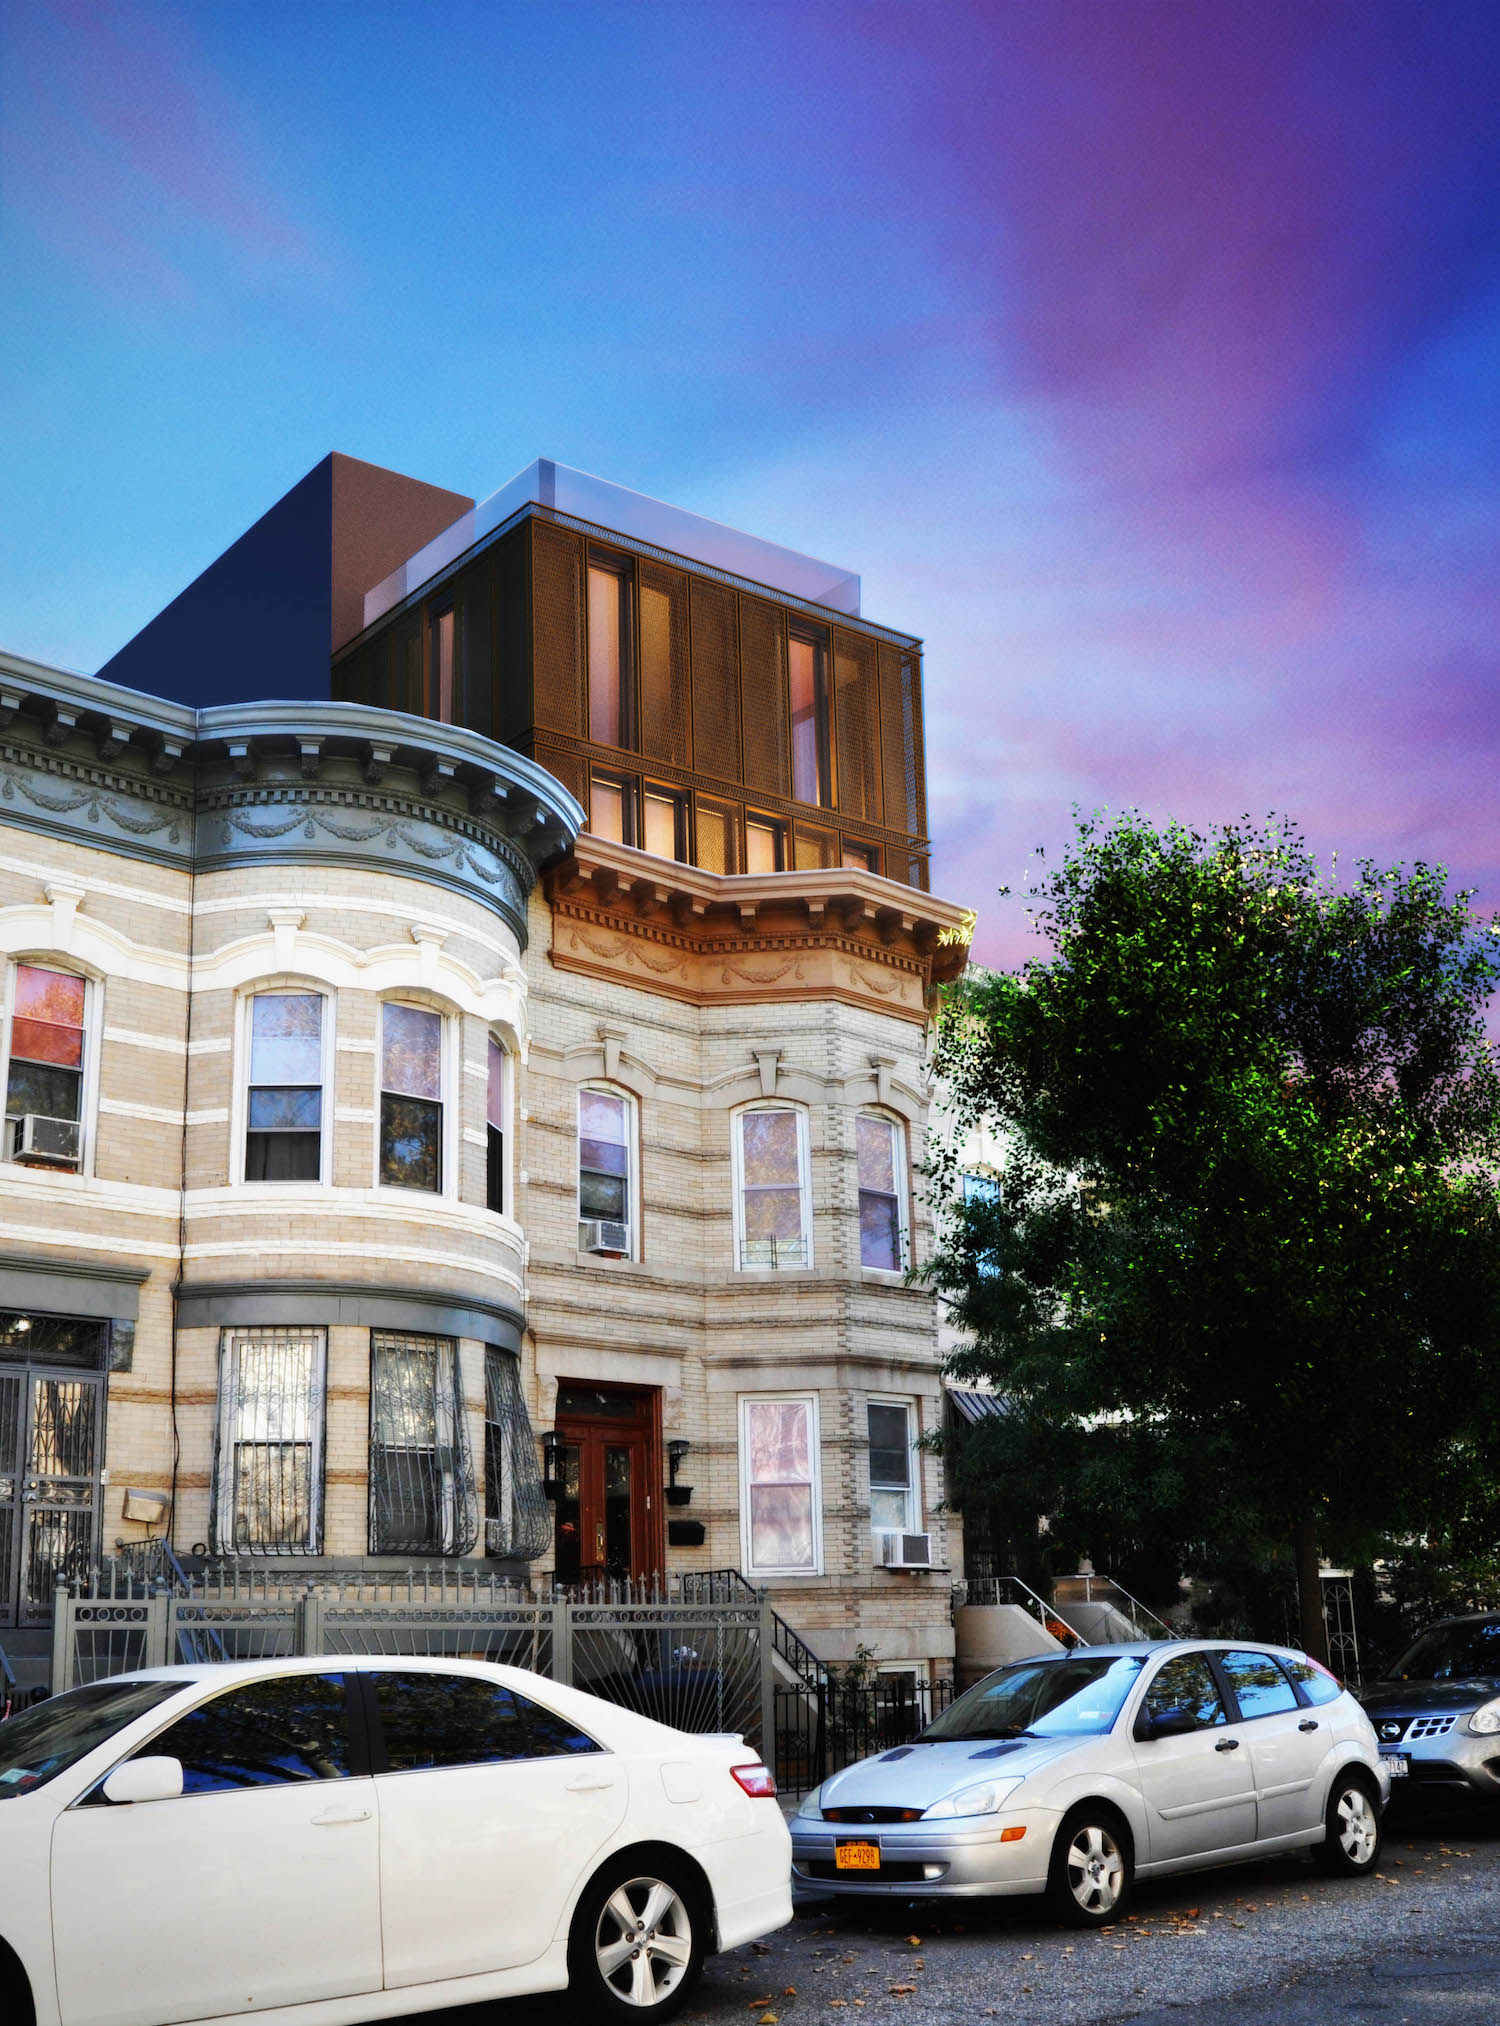 352 Weirfield Street, rendering by OPerA Studio